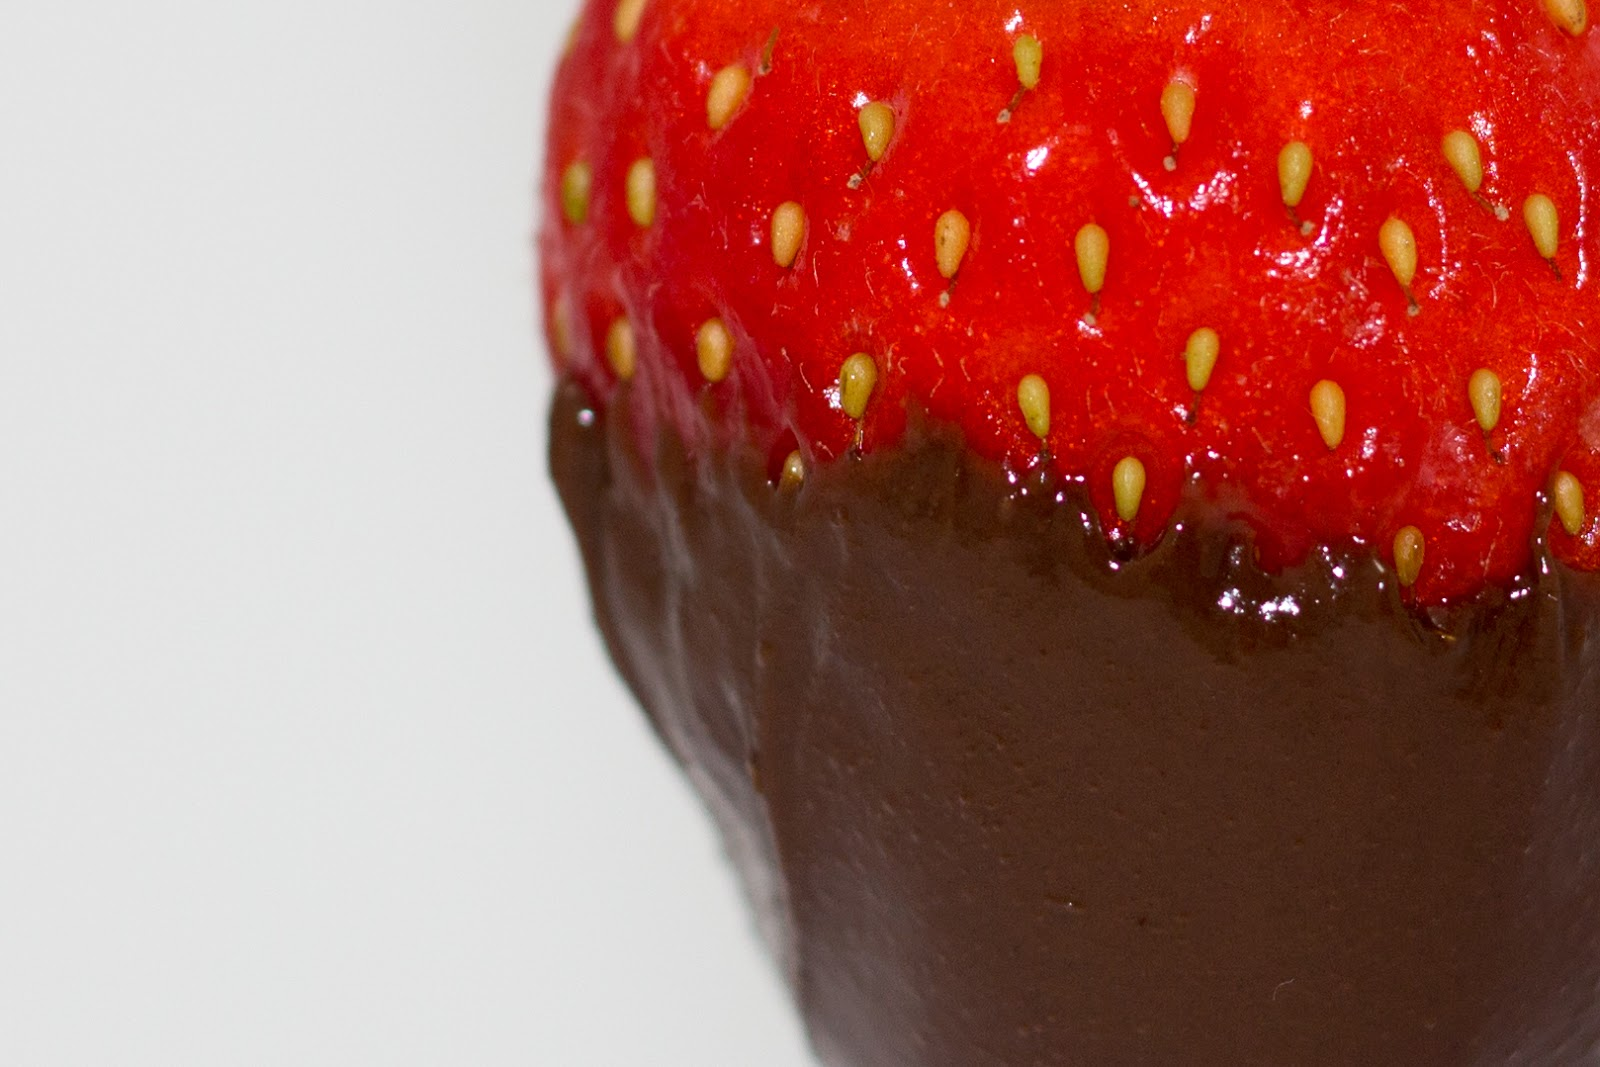 A close up of a big red strawberry dipped in Valsoia dairy free hazelnut chocolate spread